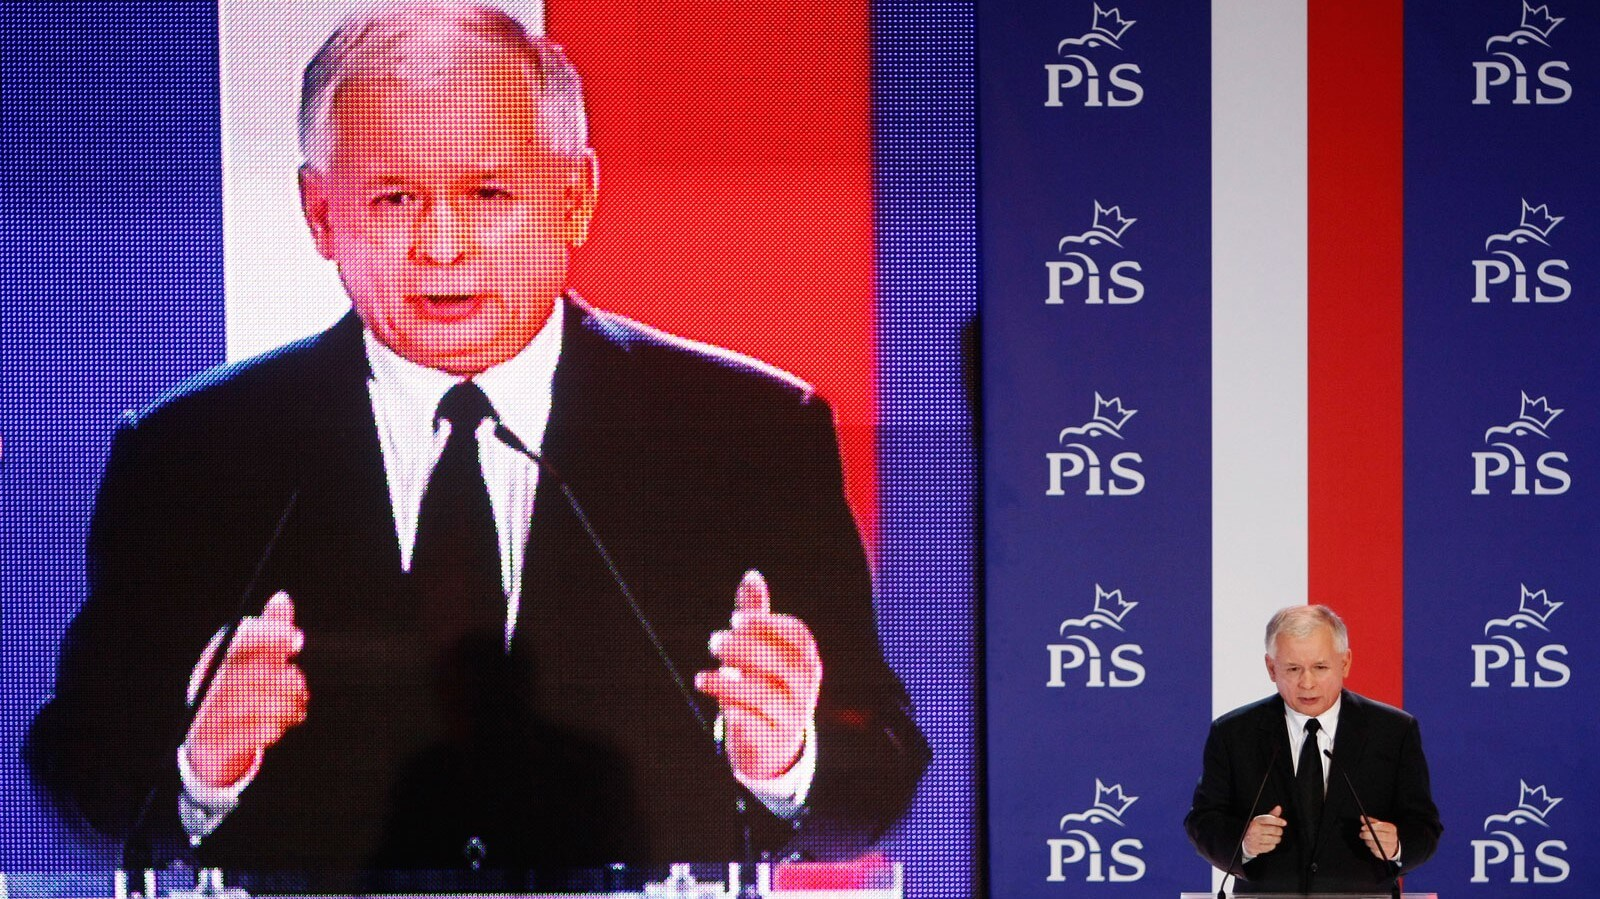 Jaroslaw Kaczynski pledged to exempt young workers from paying the income tax